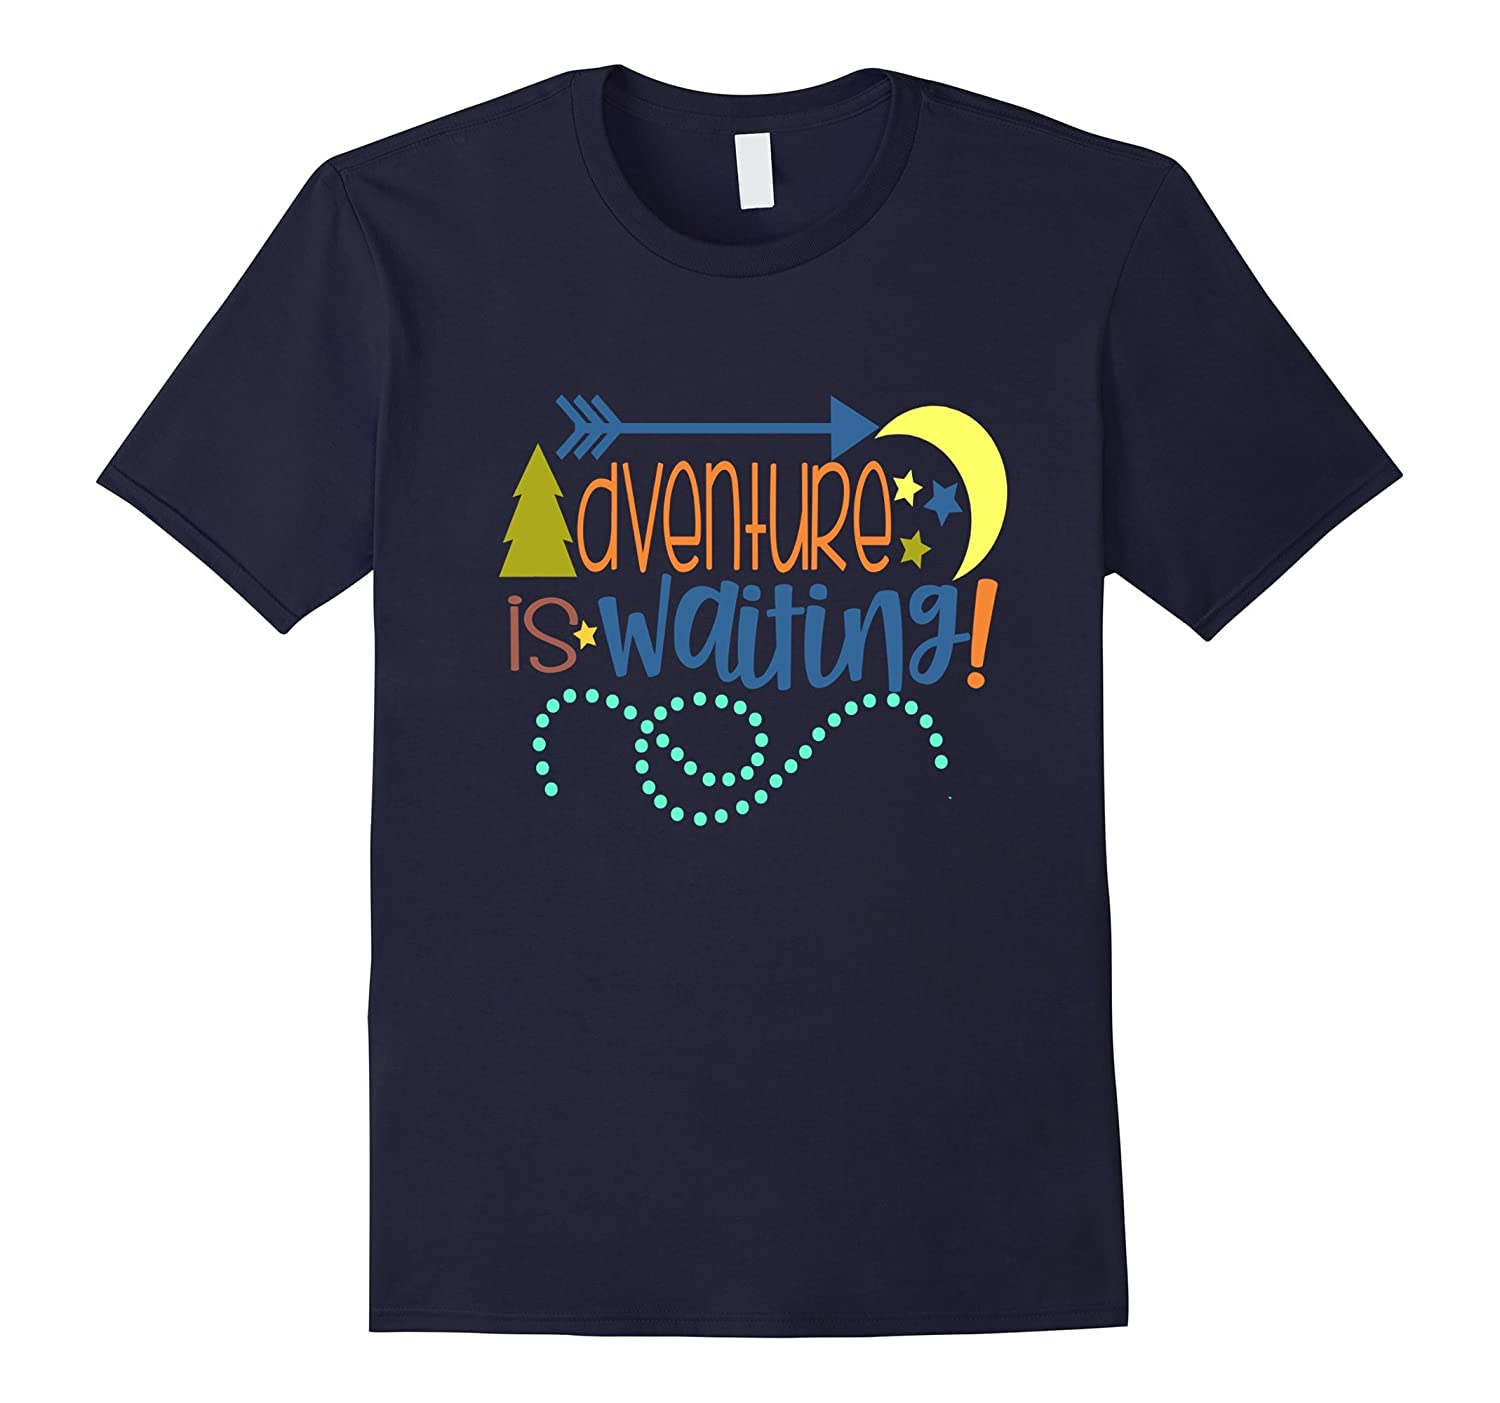 Cute Camping Shirt Camp Kids Adventure Is Waiting Moon Stars